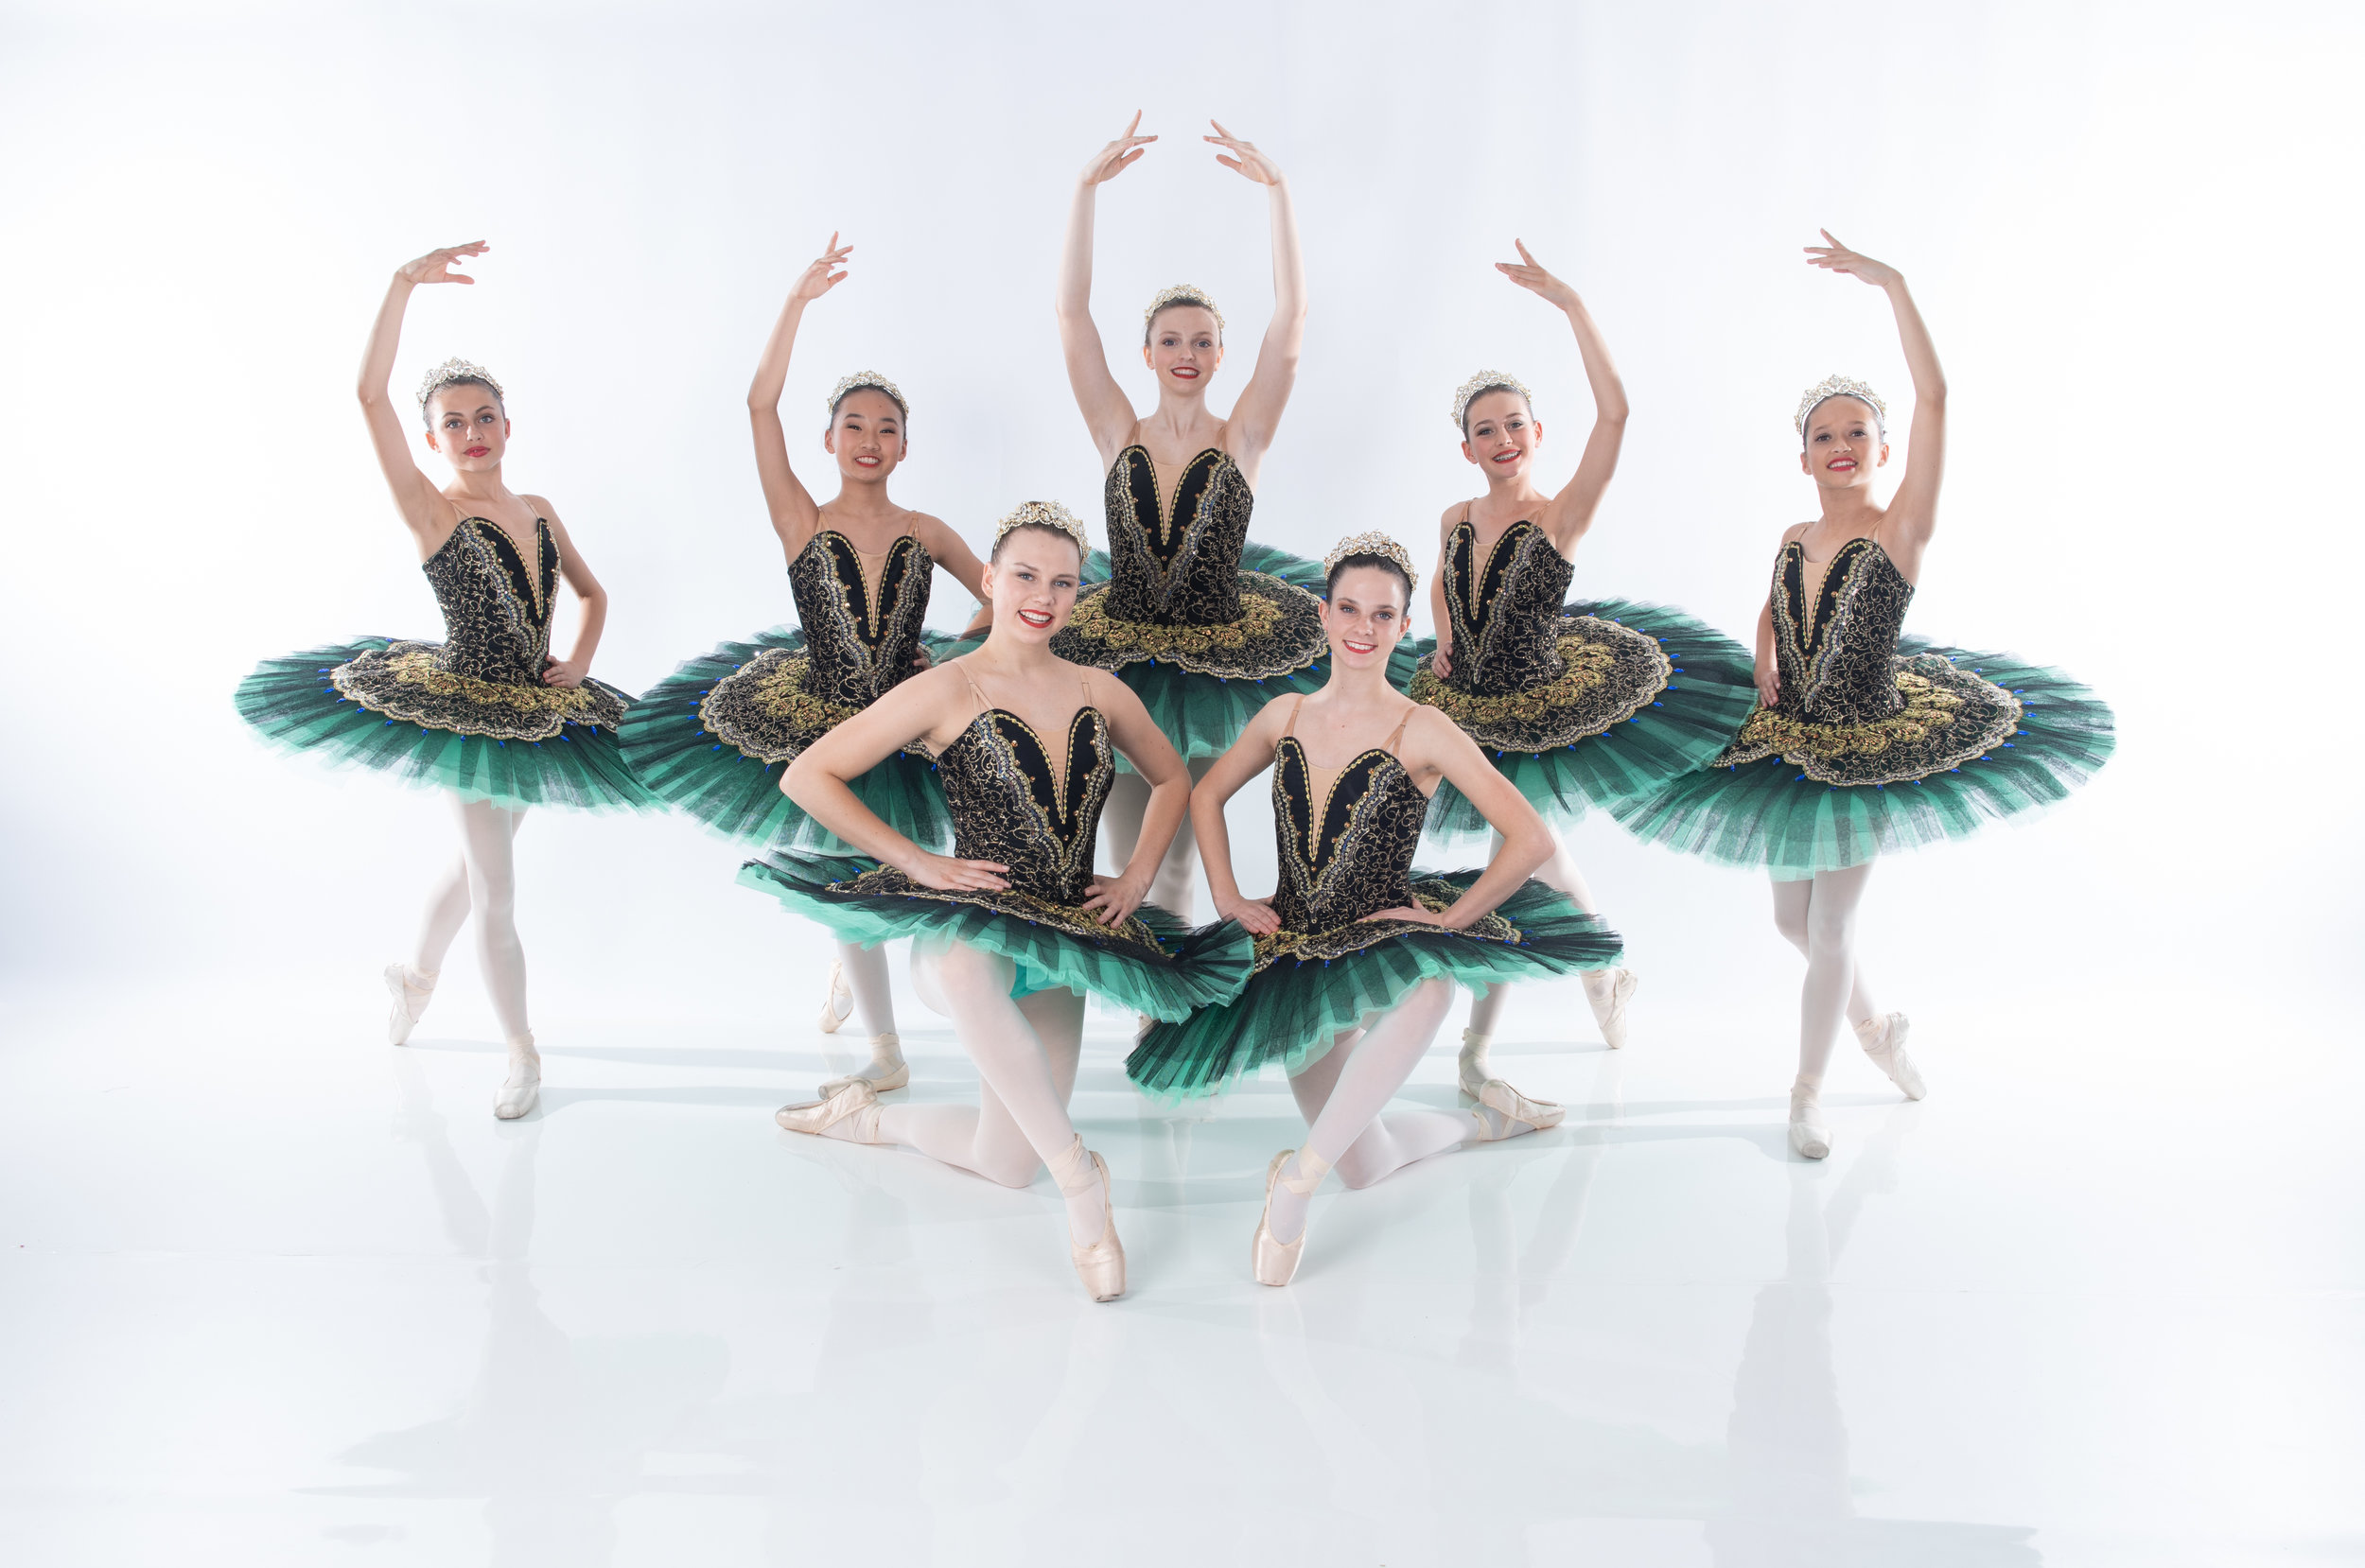 BALLET - Ballet is a highly technical form of dance training with its own vocabulary based on French terminology. It has influenced and defined the foundation of techniques used in many other genres. Ballet has evolved over the years but will always hold the most important dance fundamentals. It requires hard work, dedication and discipline.